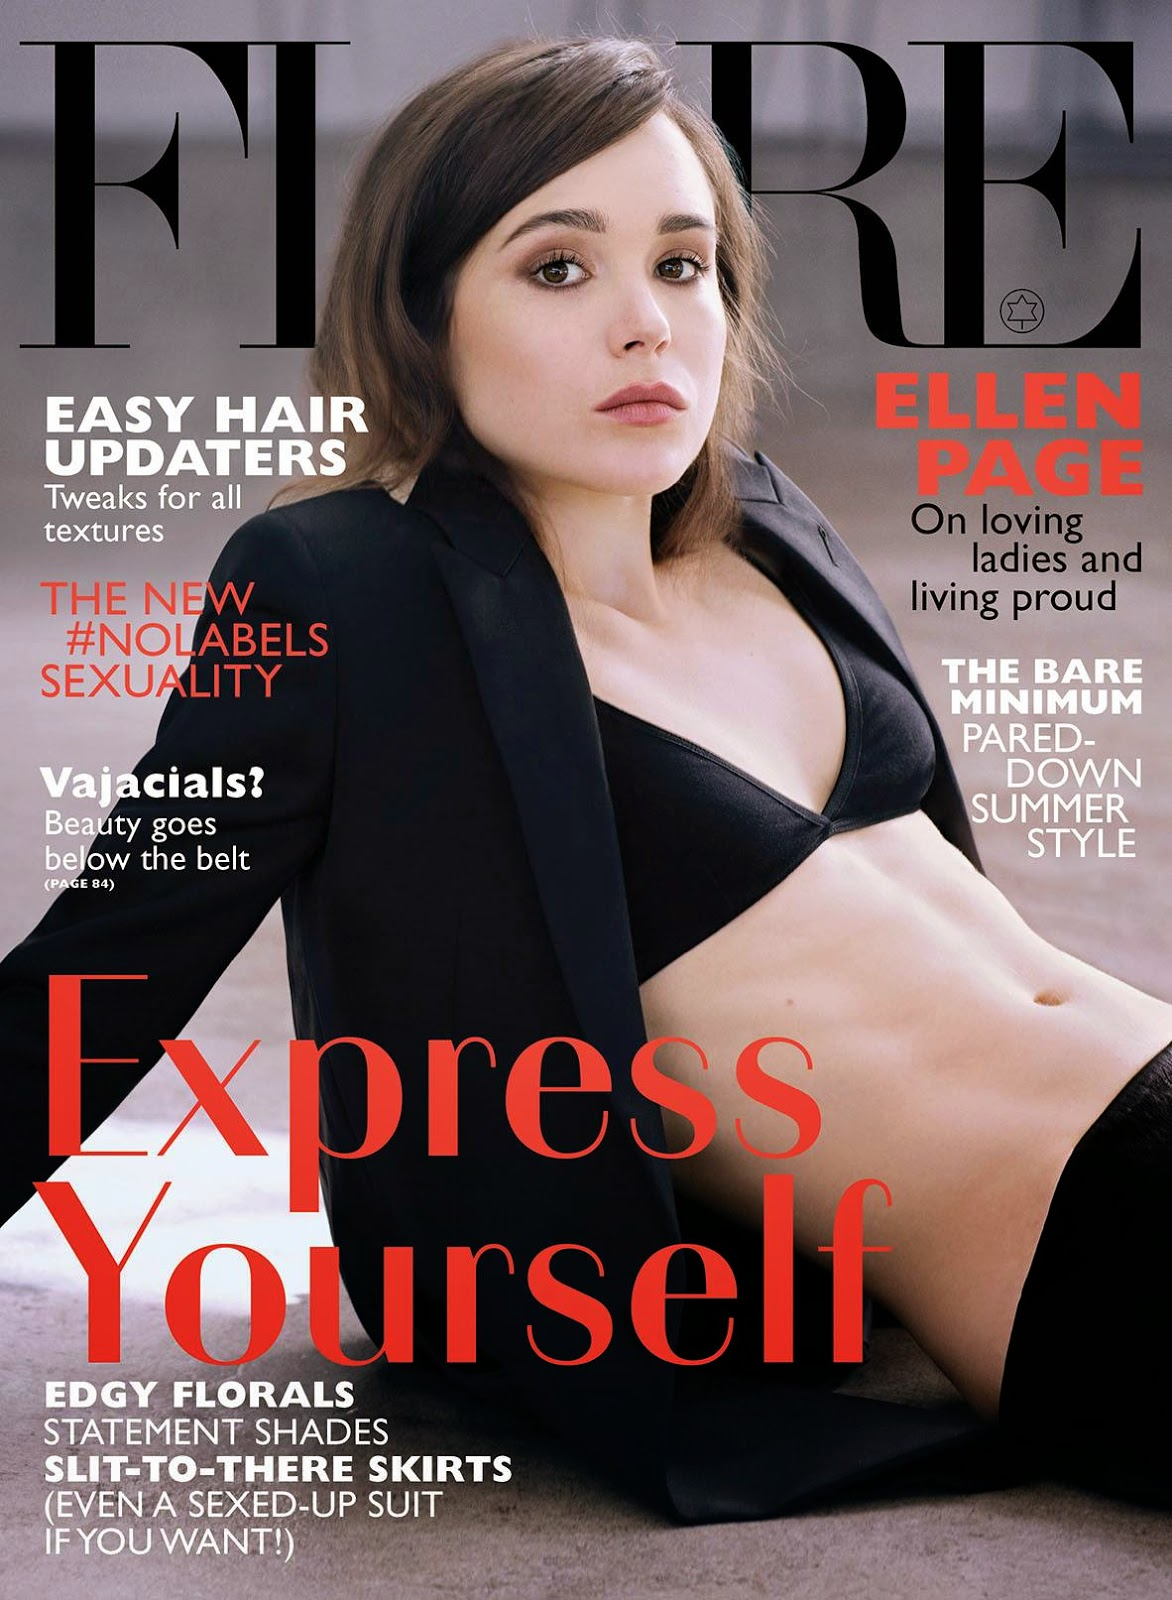 Ellen Page wears a black bra for the Flare June 2014 cover